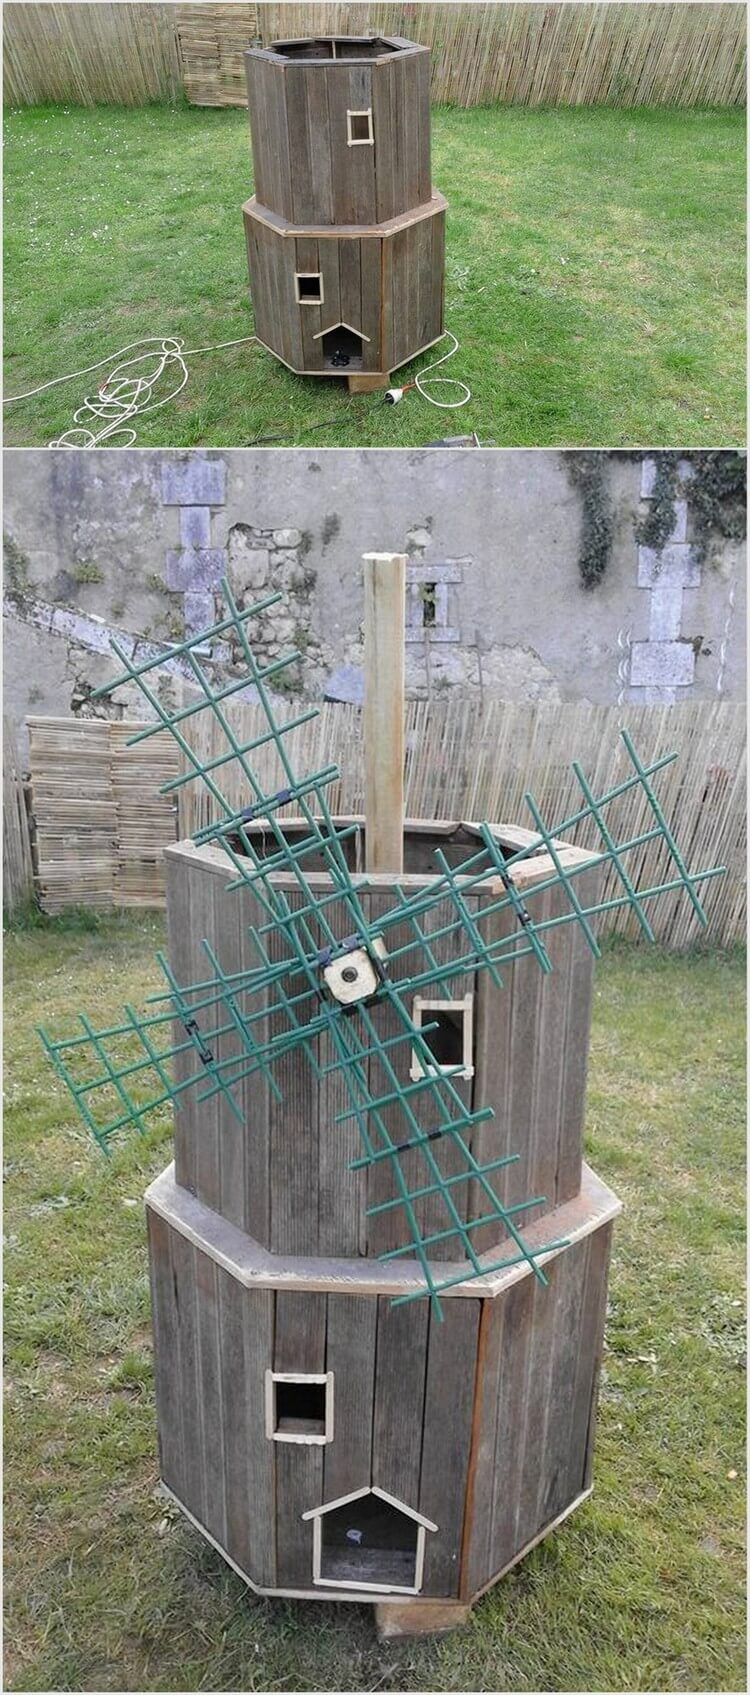 Recycled Wood Pallet Wind Mill for Kids